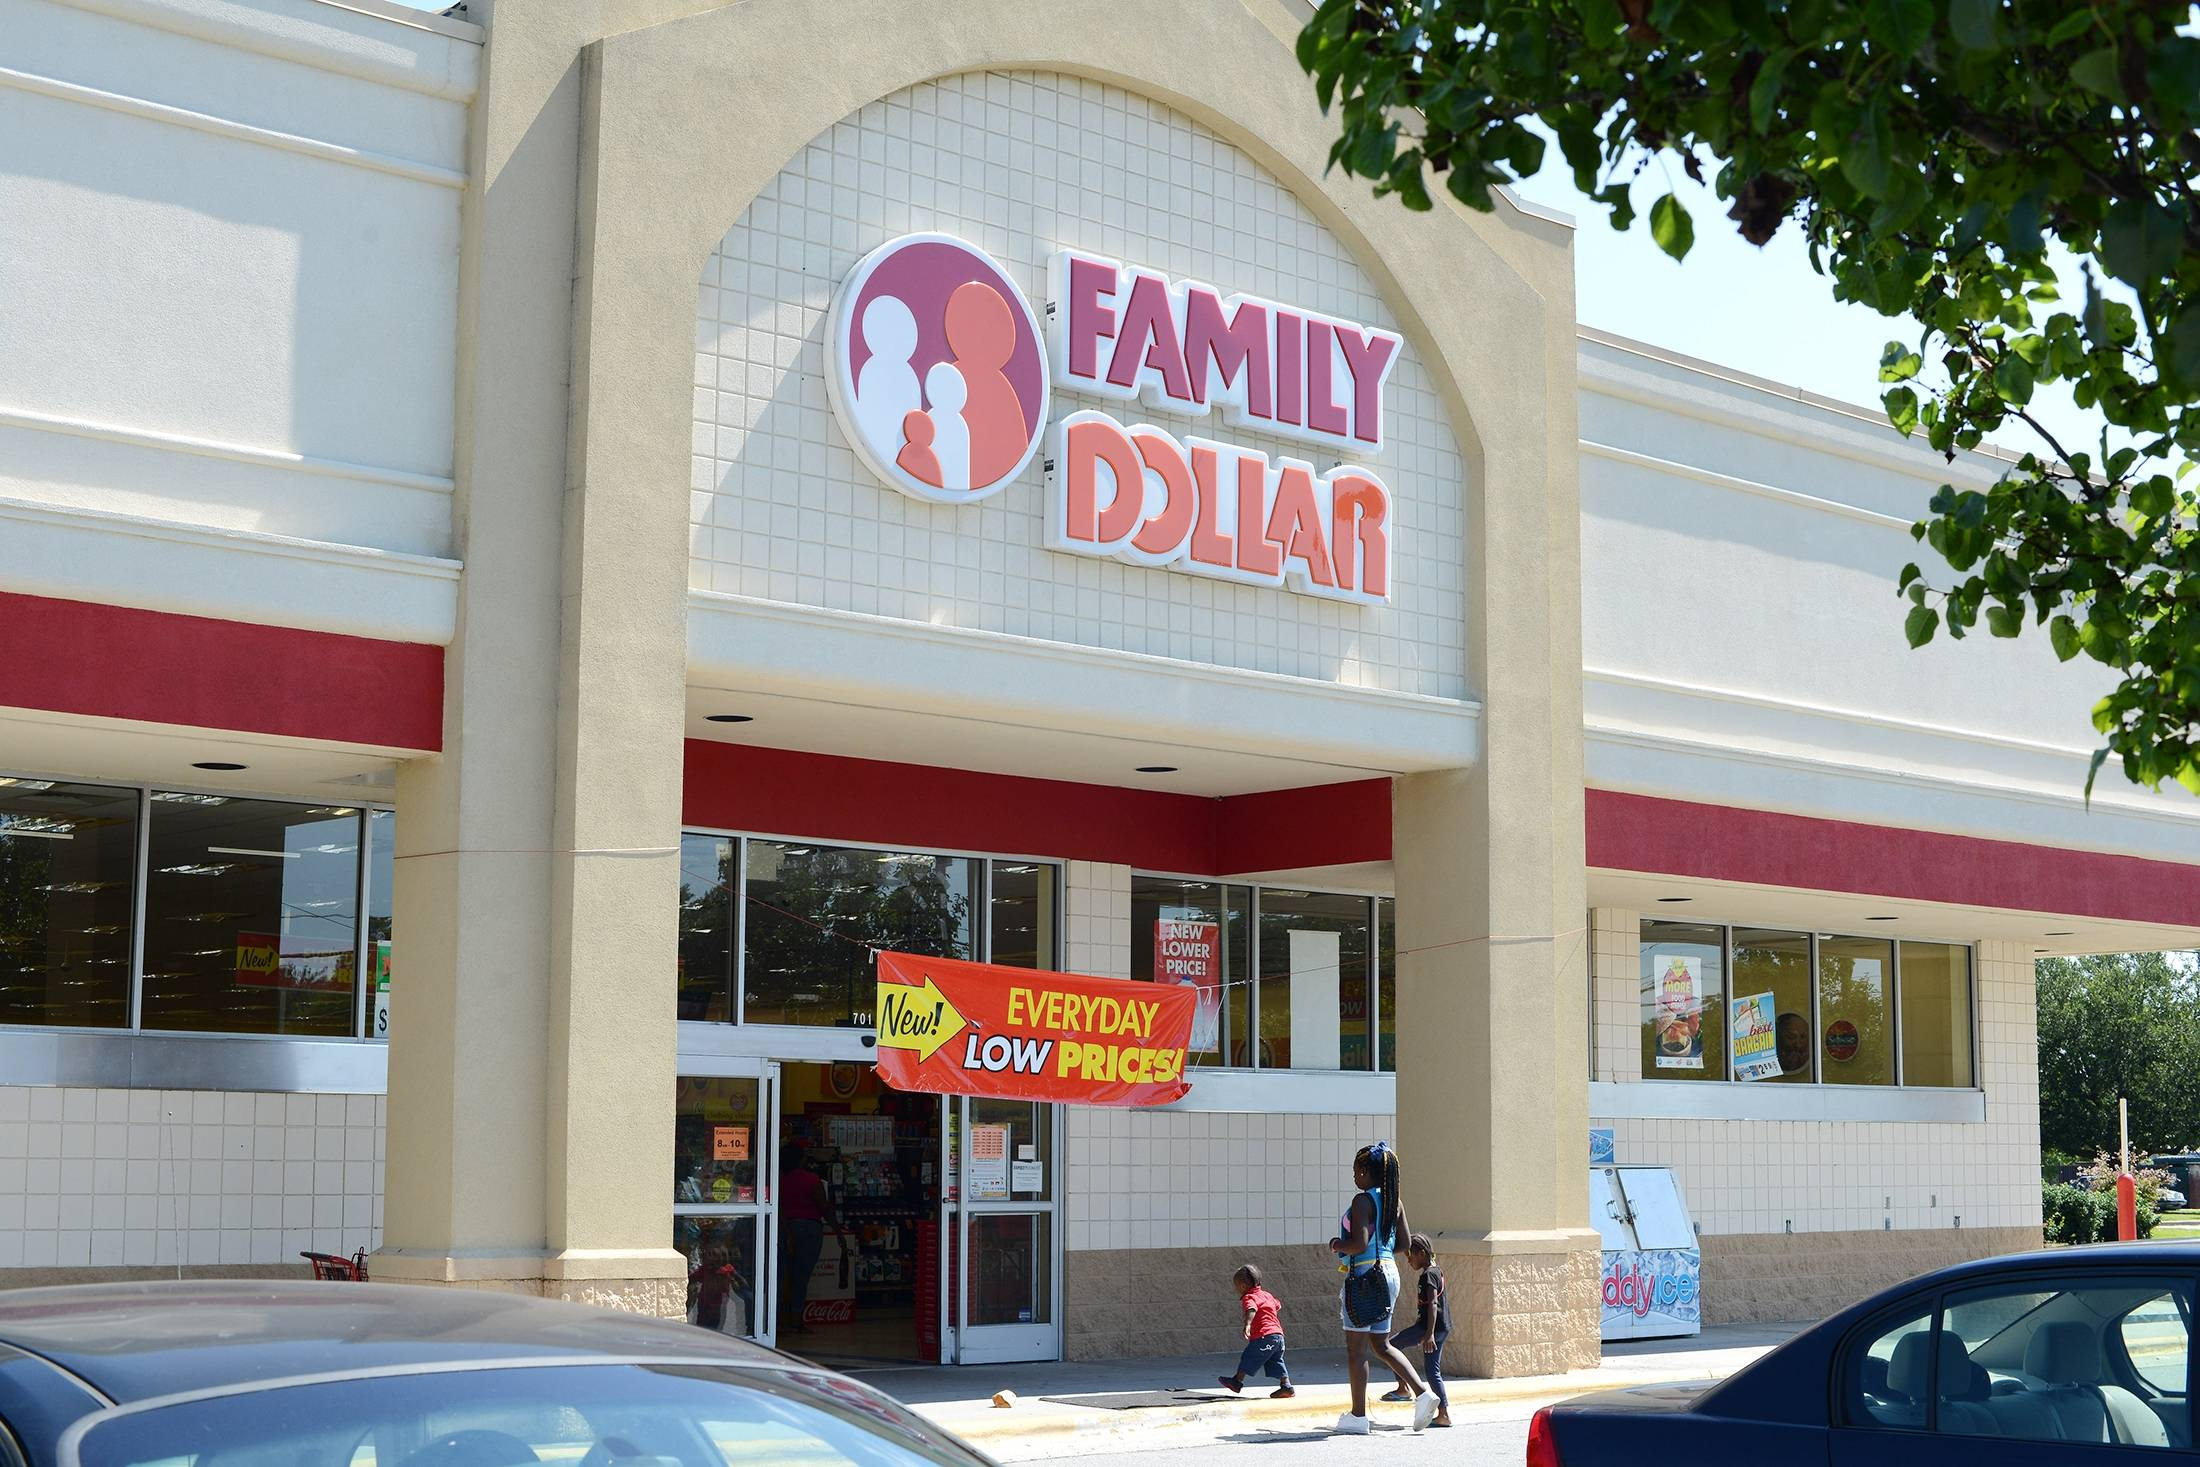 Dollar General Corp. said Monday that it would pay $78.50 per share in cash, 3 percent higher than Family Dollar Stores Inc.'s Friday closing price of $76.06. Dollar General put the deal's value at $9.7 billion.